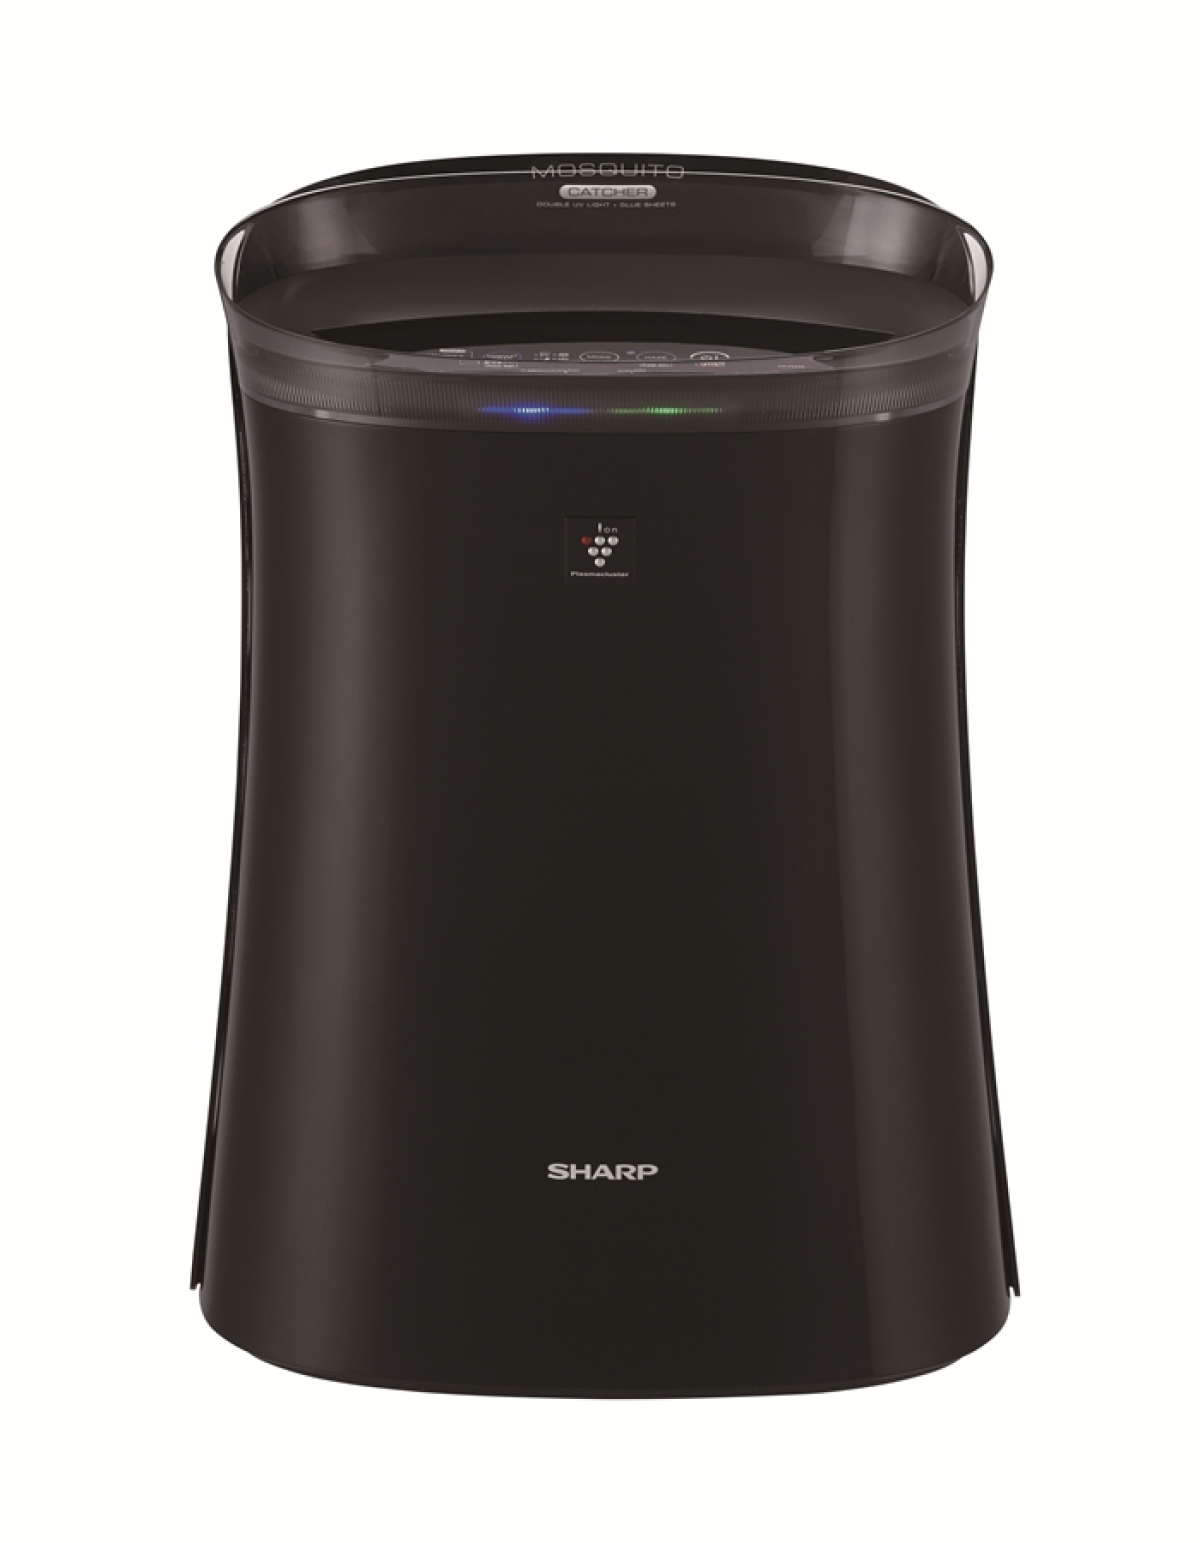 SHARP launches the world's first Air Purifier with a built-in mosquito catcher